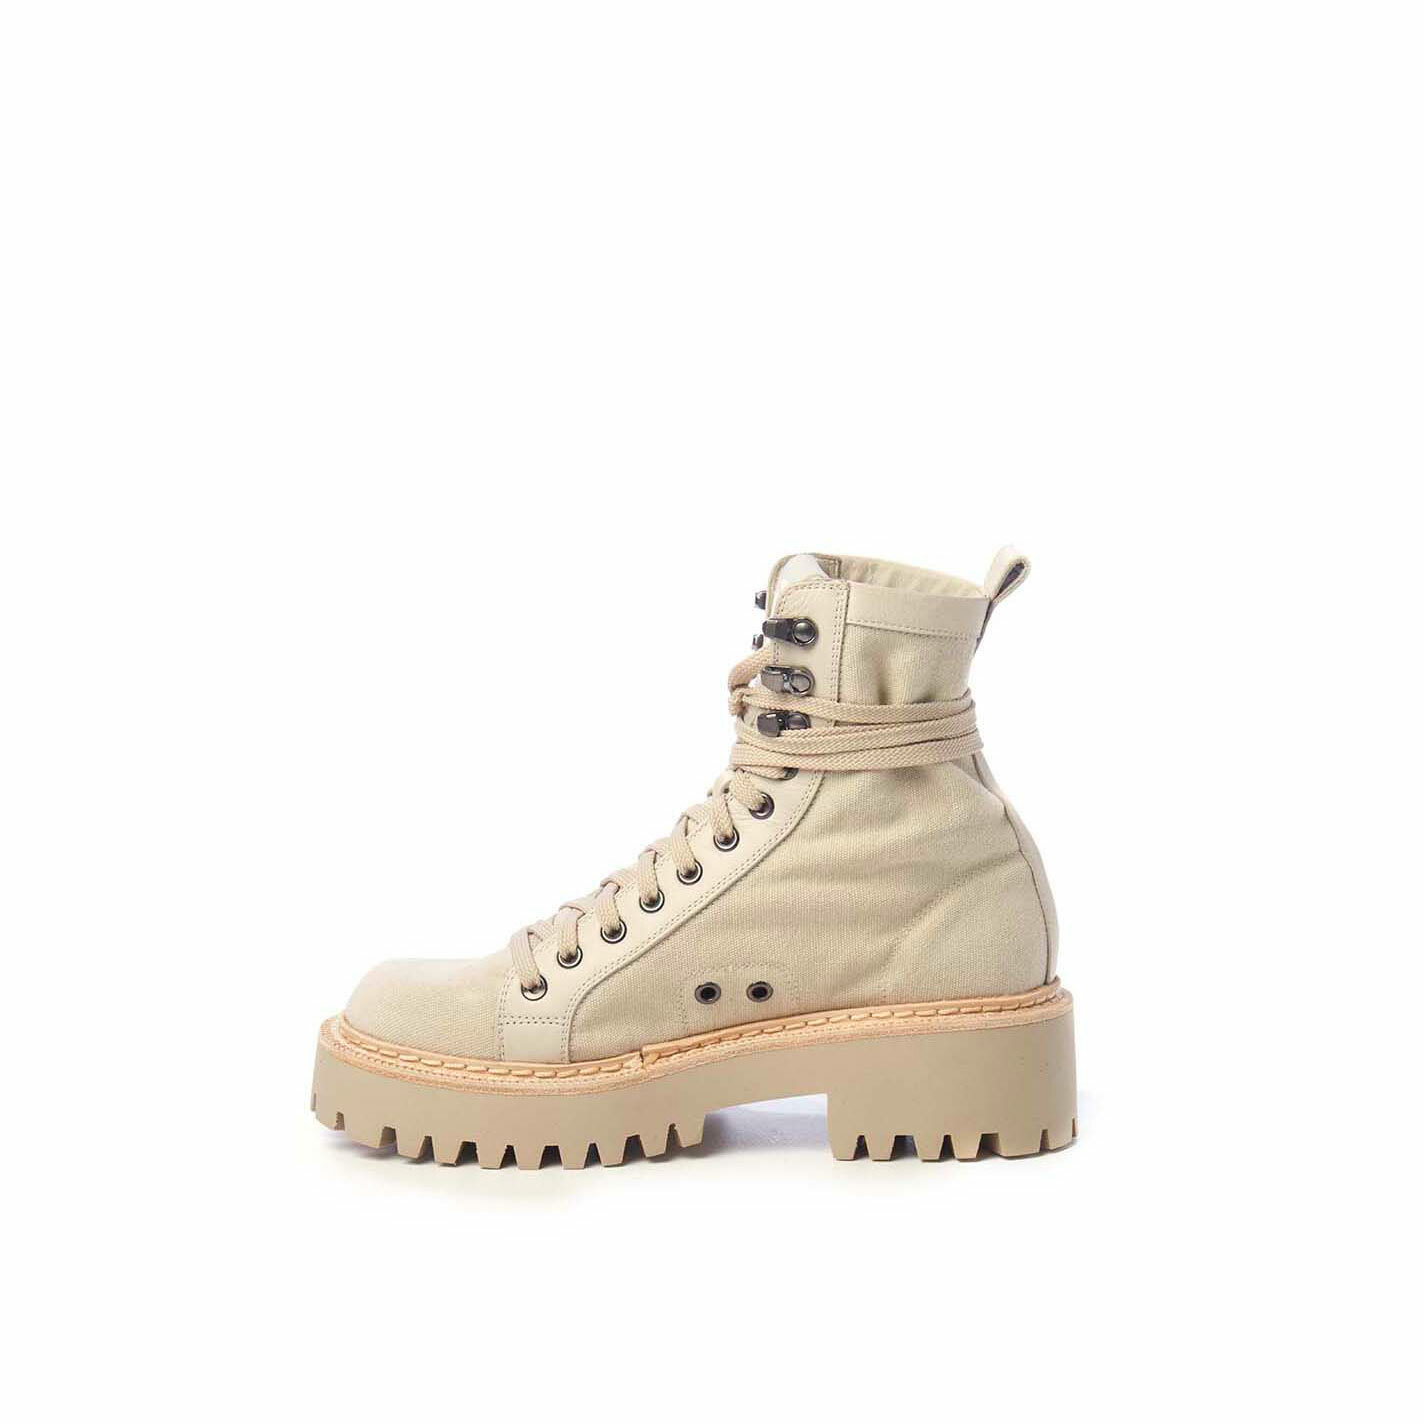 Sand-yellow calfskin and canvas walking boots